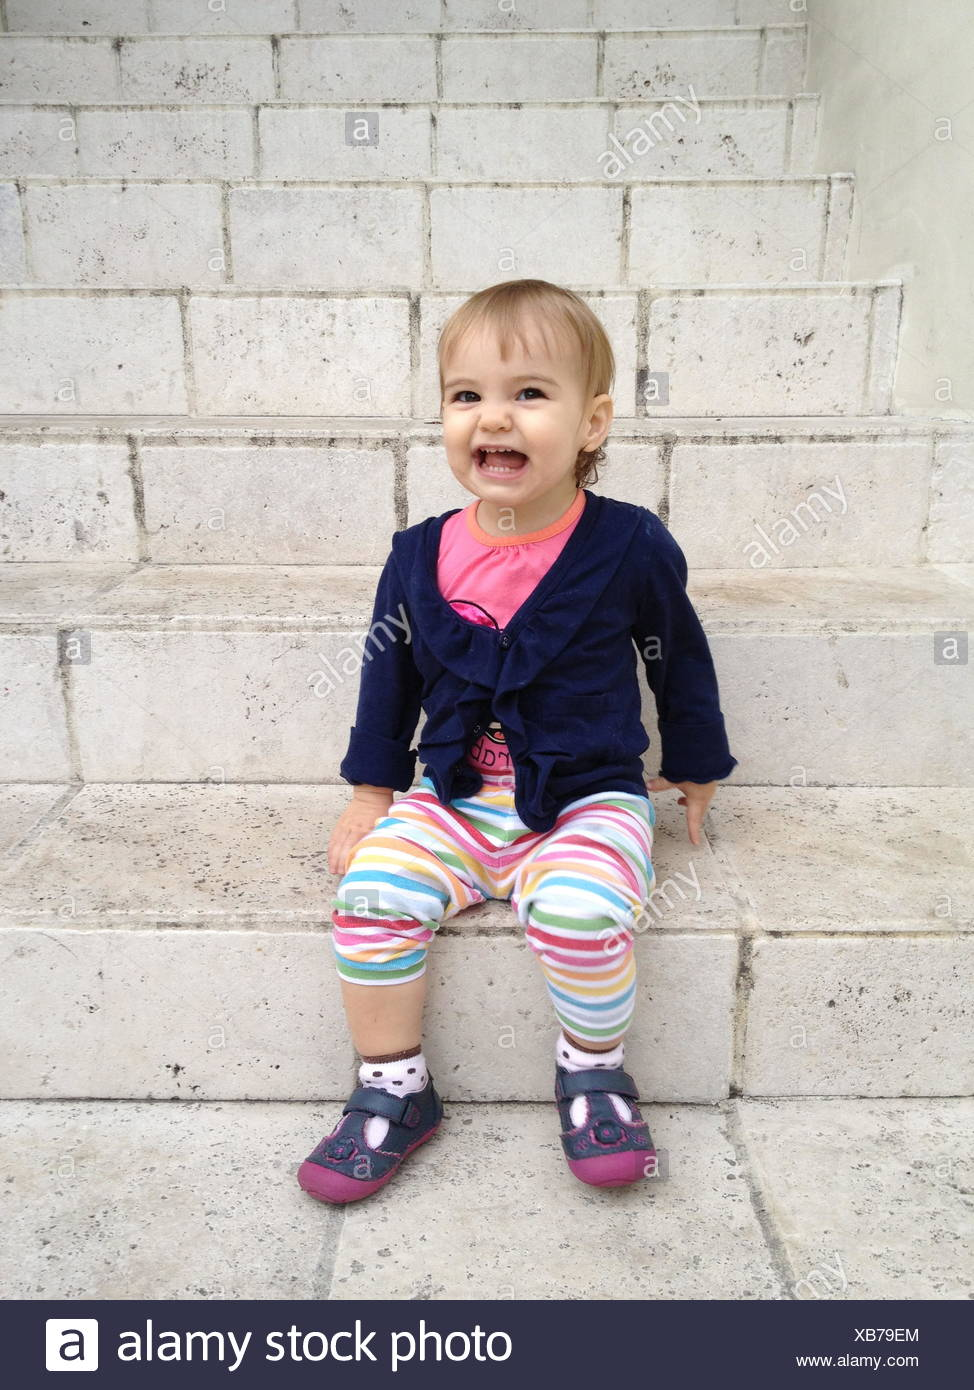 Portrait of girl (18-23 months) sitting on steps - Stock Image